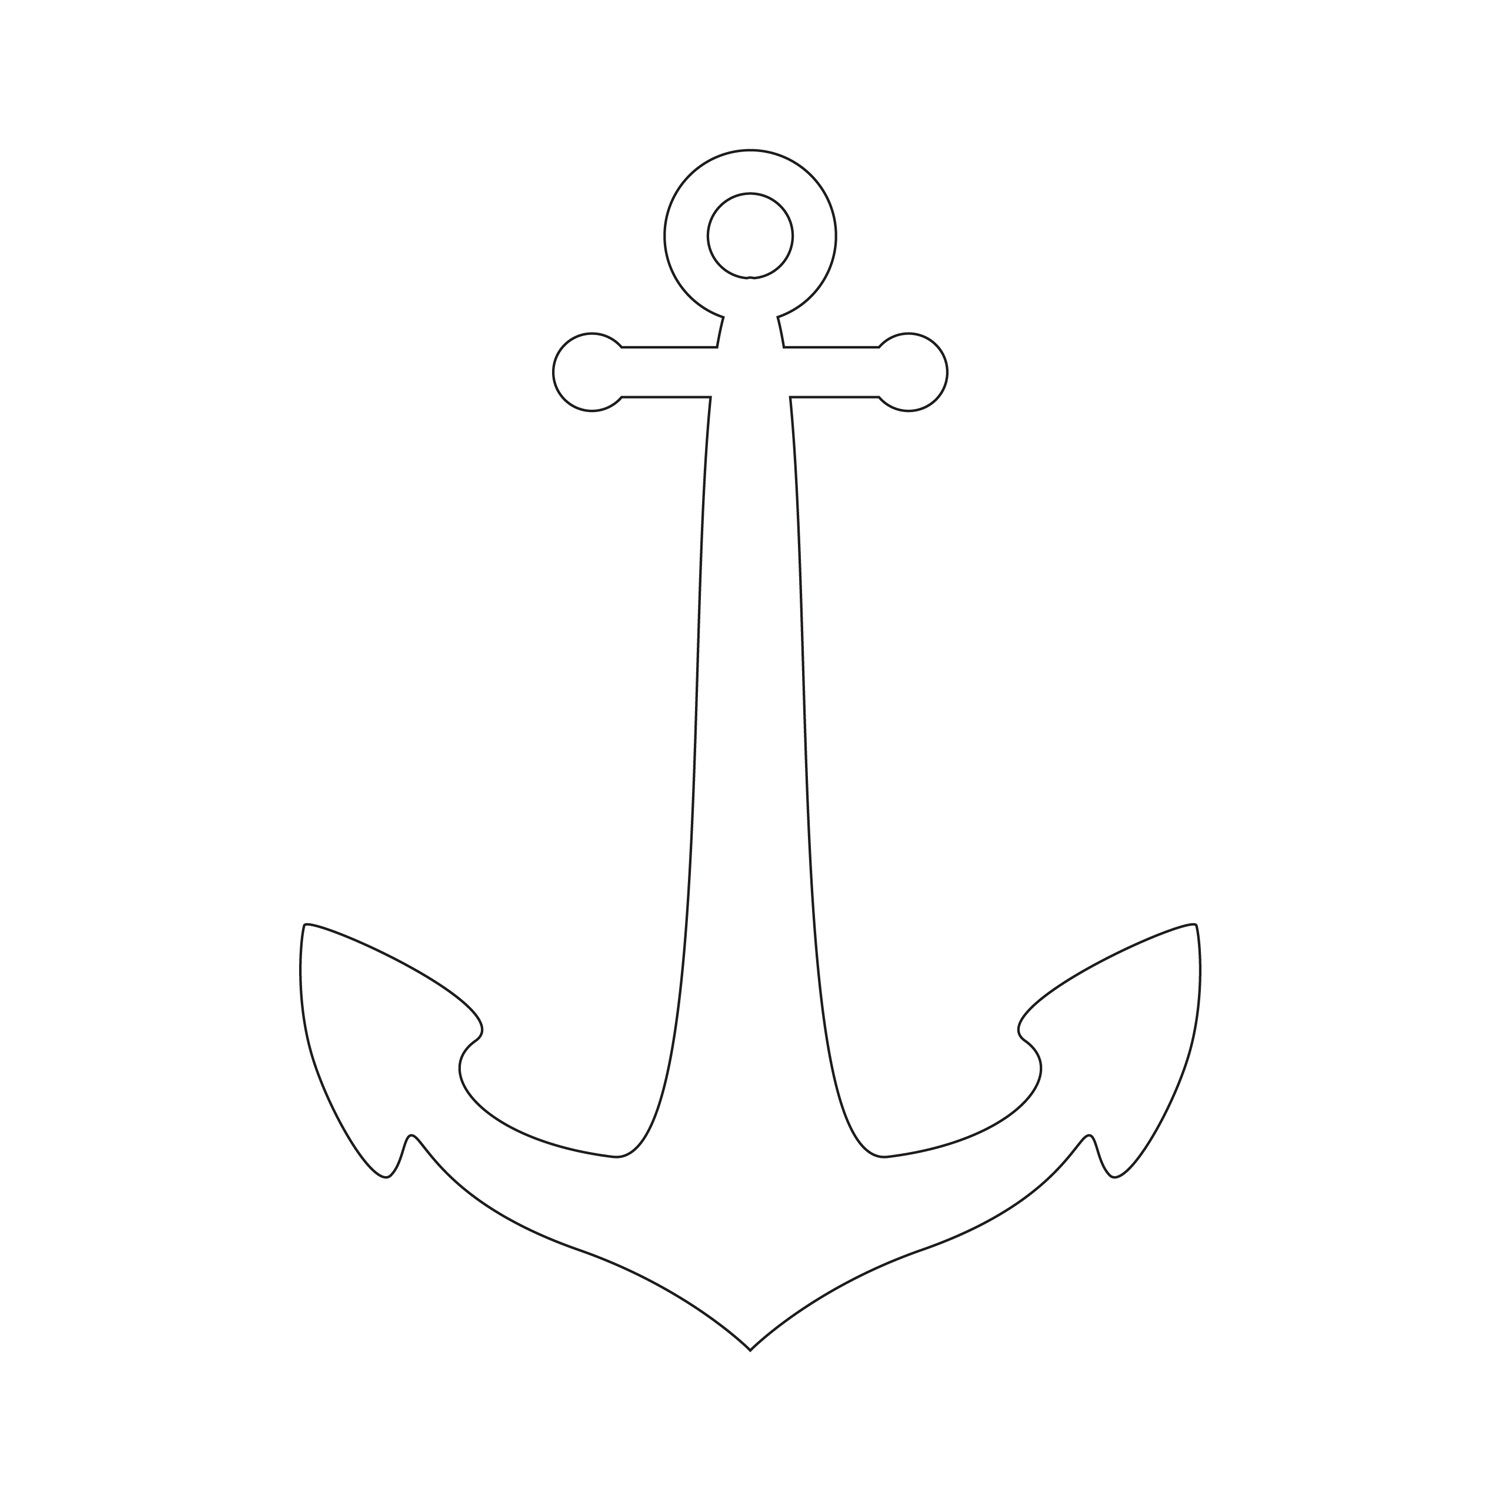 Anchor Stencil | Free Printable Stencil Templates | Wood Burning - Free Printable Stencils